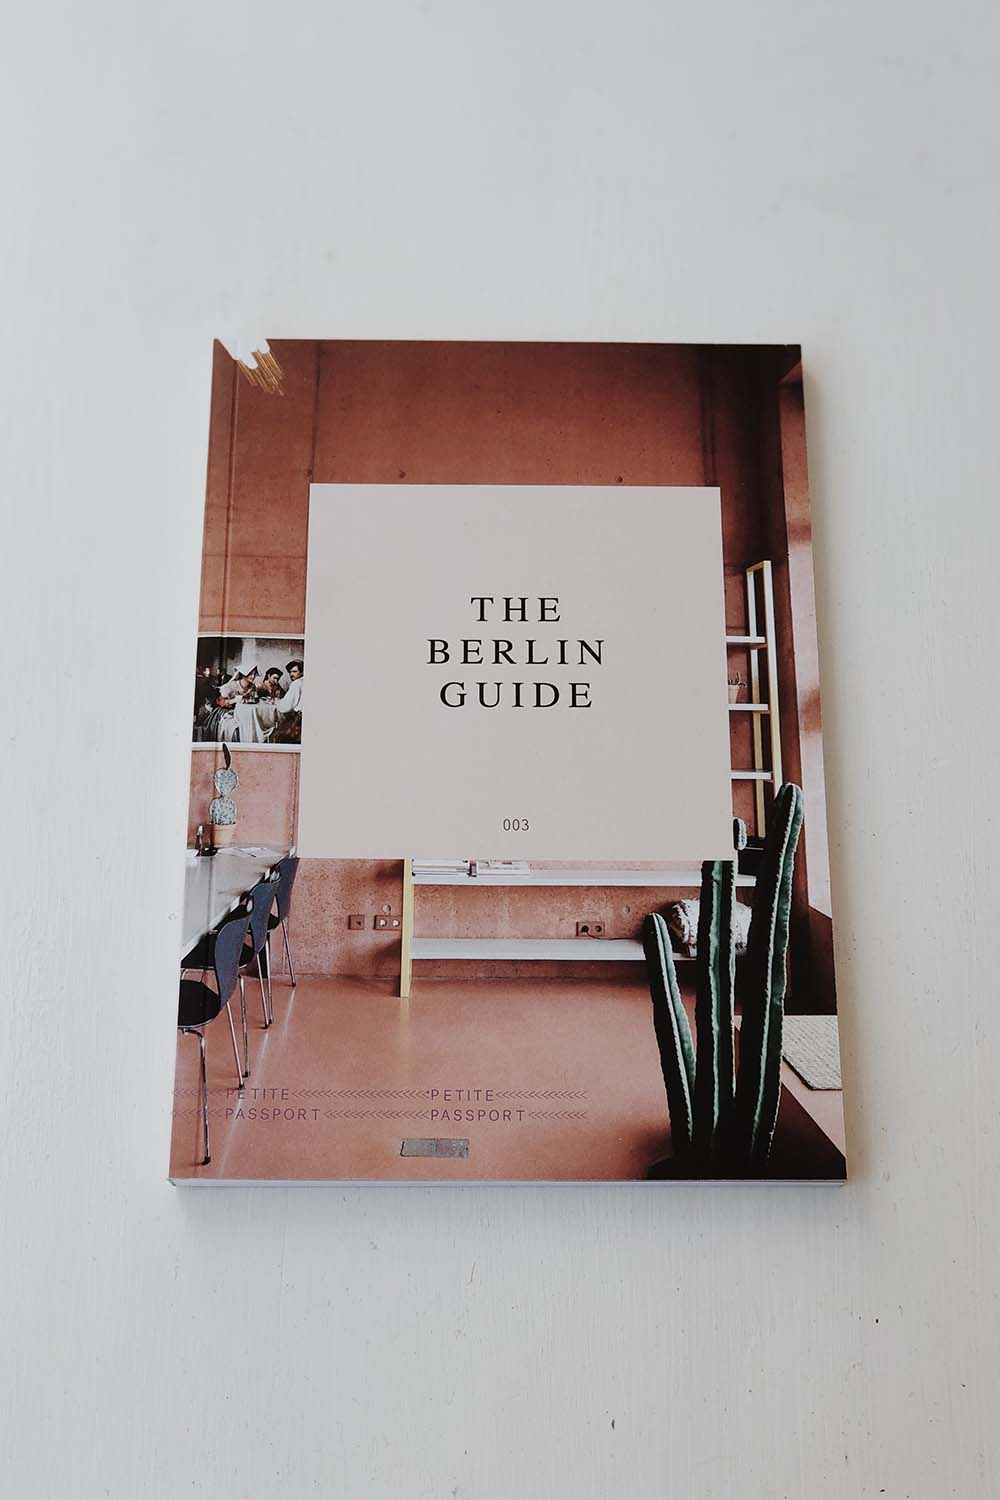 The Berlin Guide by Petite Passport